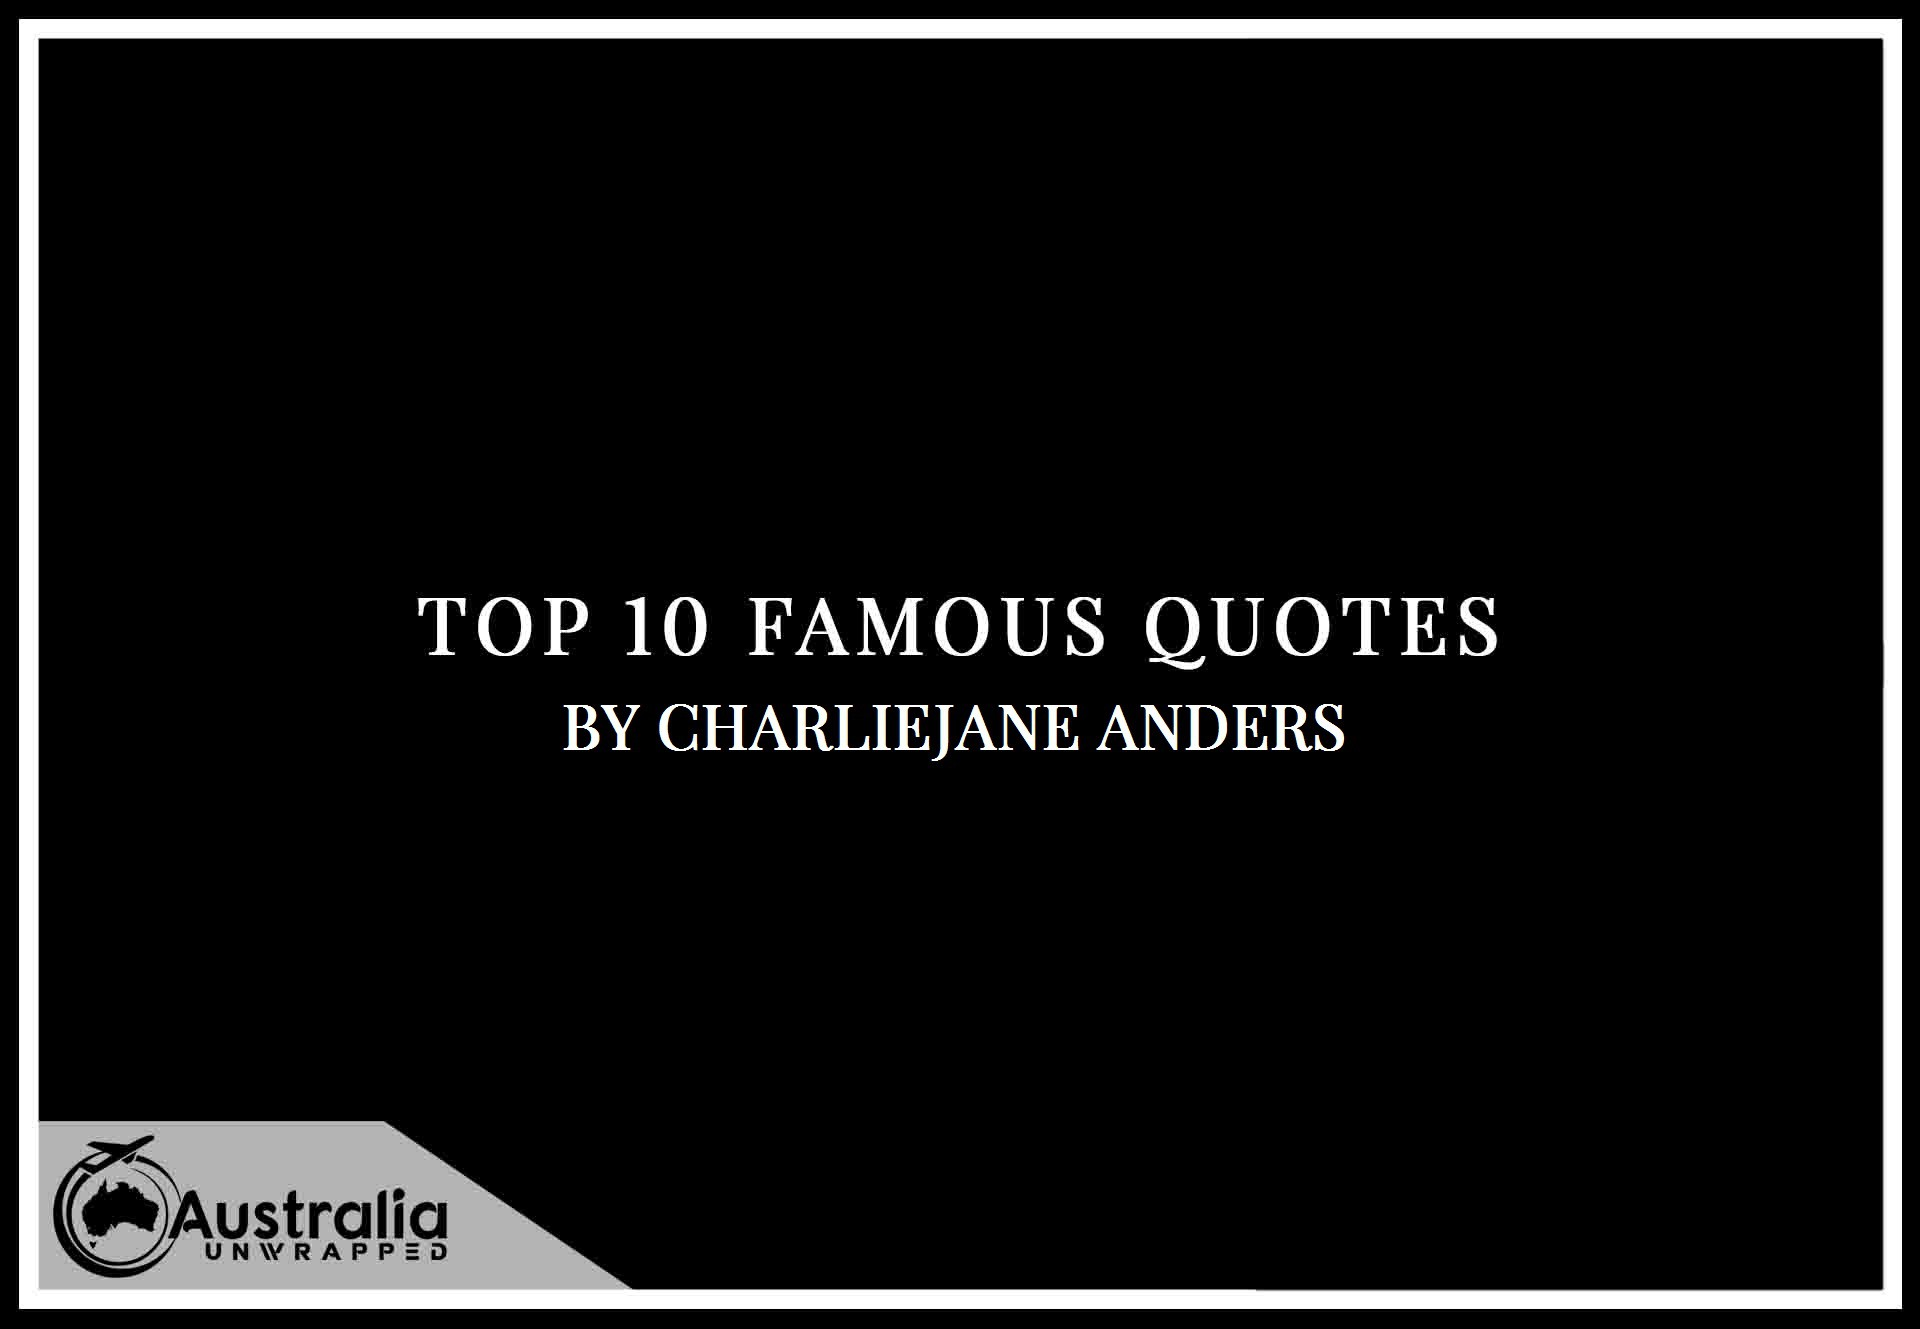 Charlie Jane Anders's Top 10 Popular and Famous Quotes